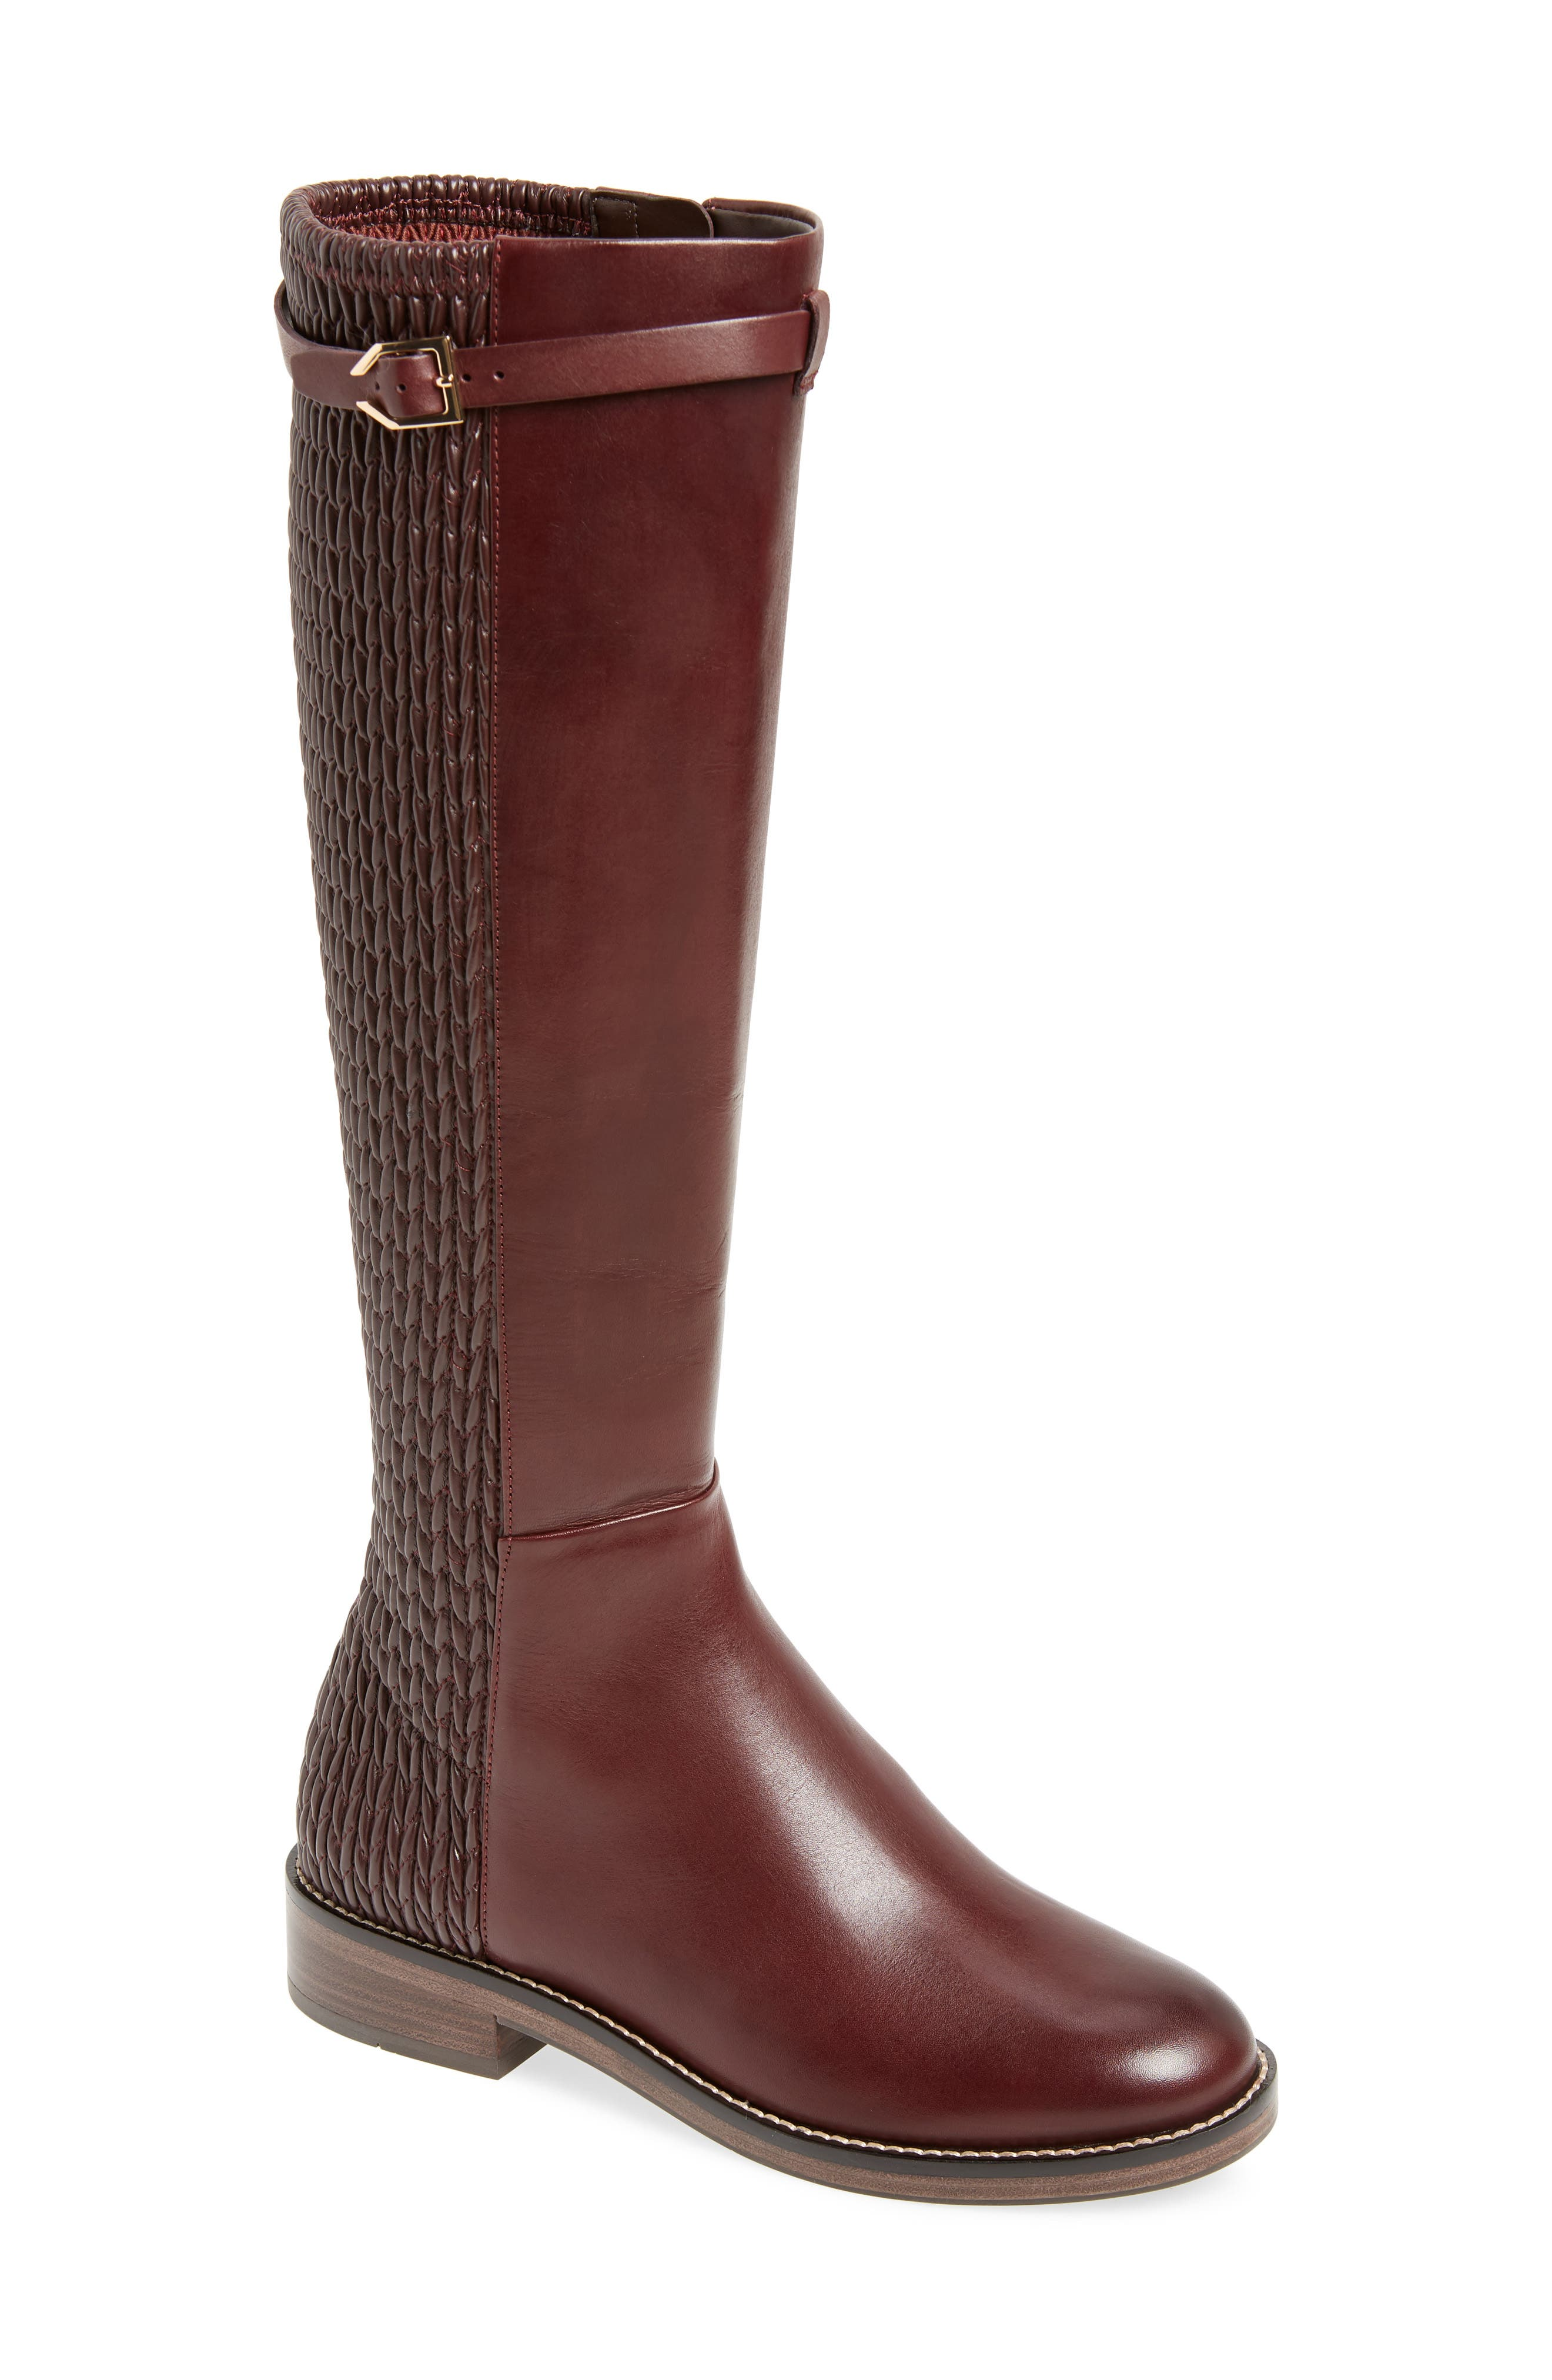 Lexi Grand Knee High Stretch Boot,                             Main thumbnail 1, color,                             CORDOVAN LEATHER